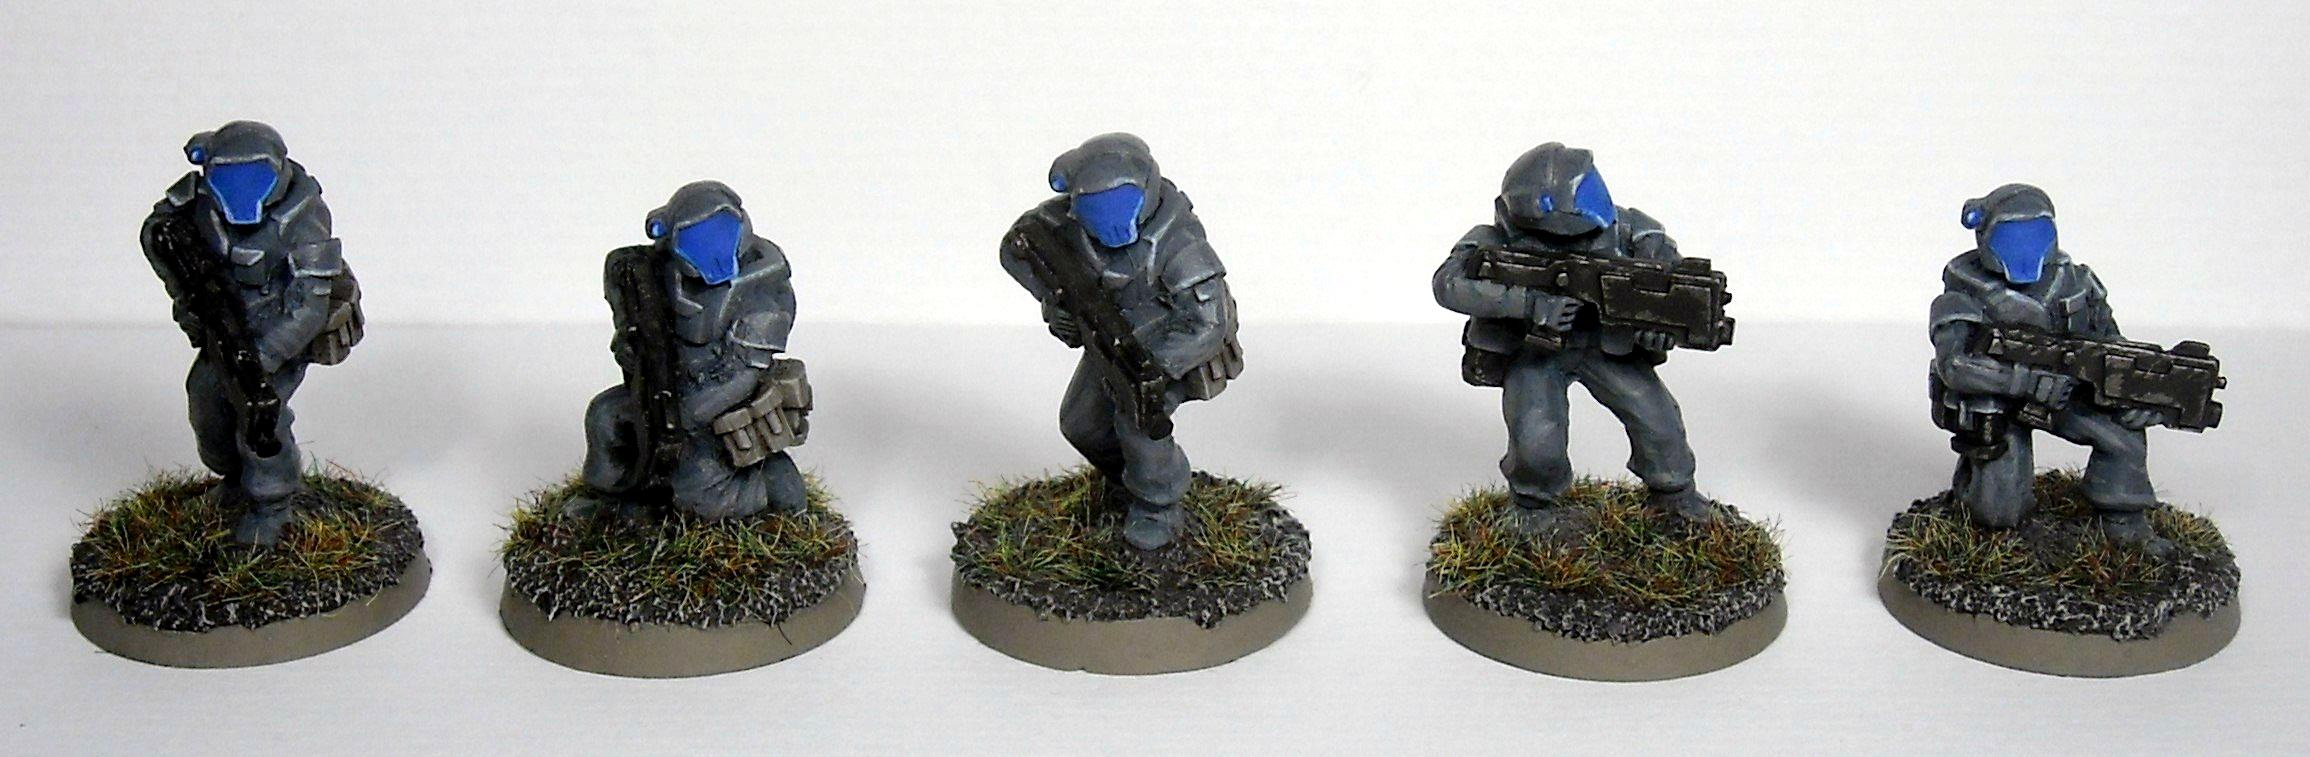 Pig Iron troops